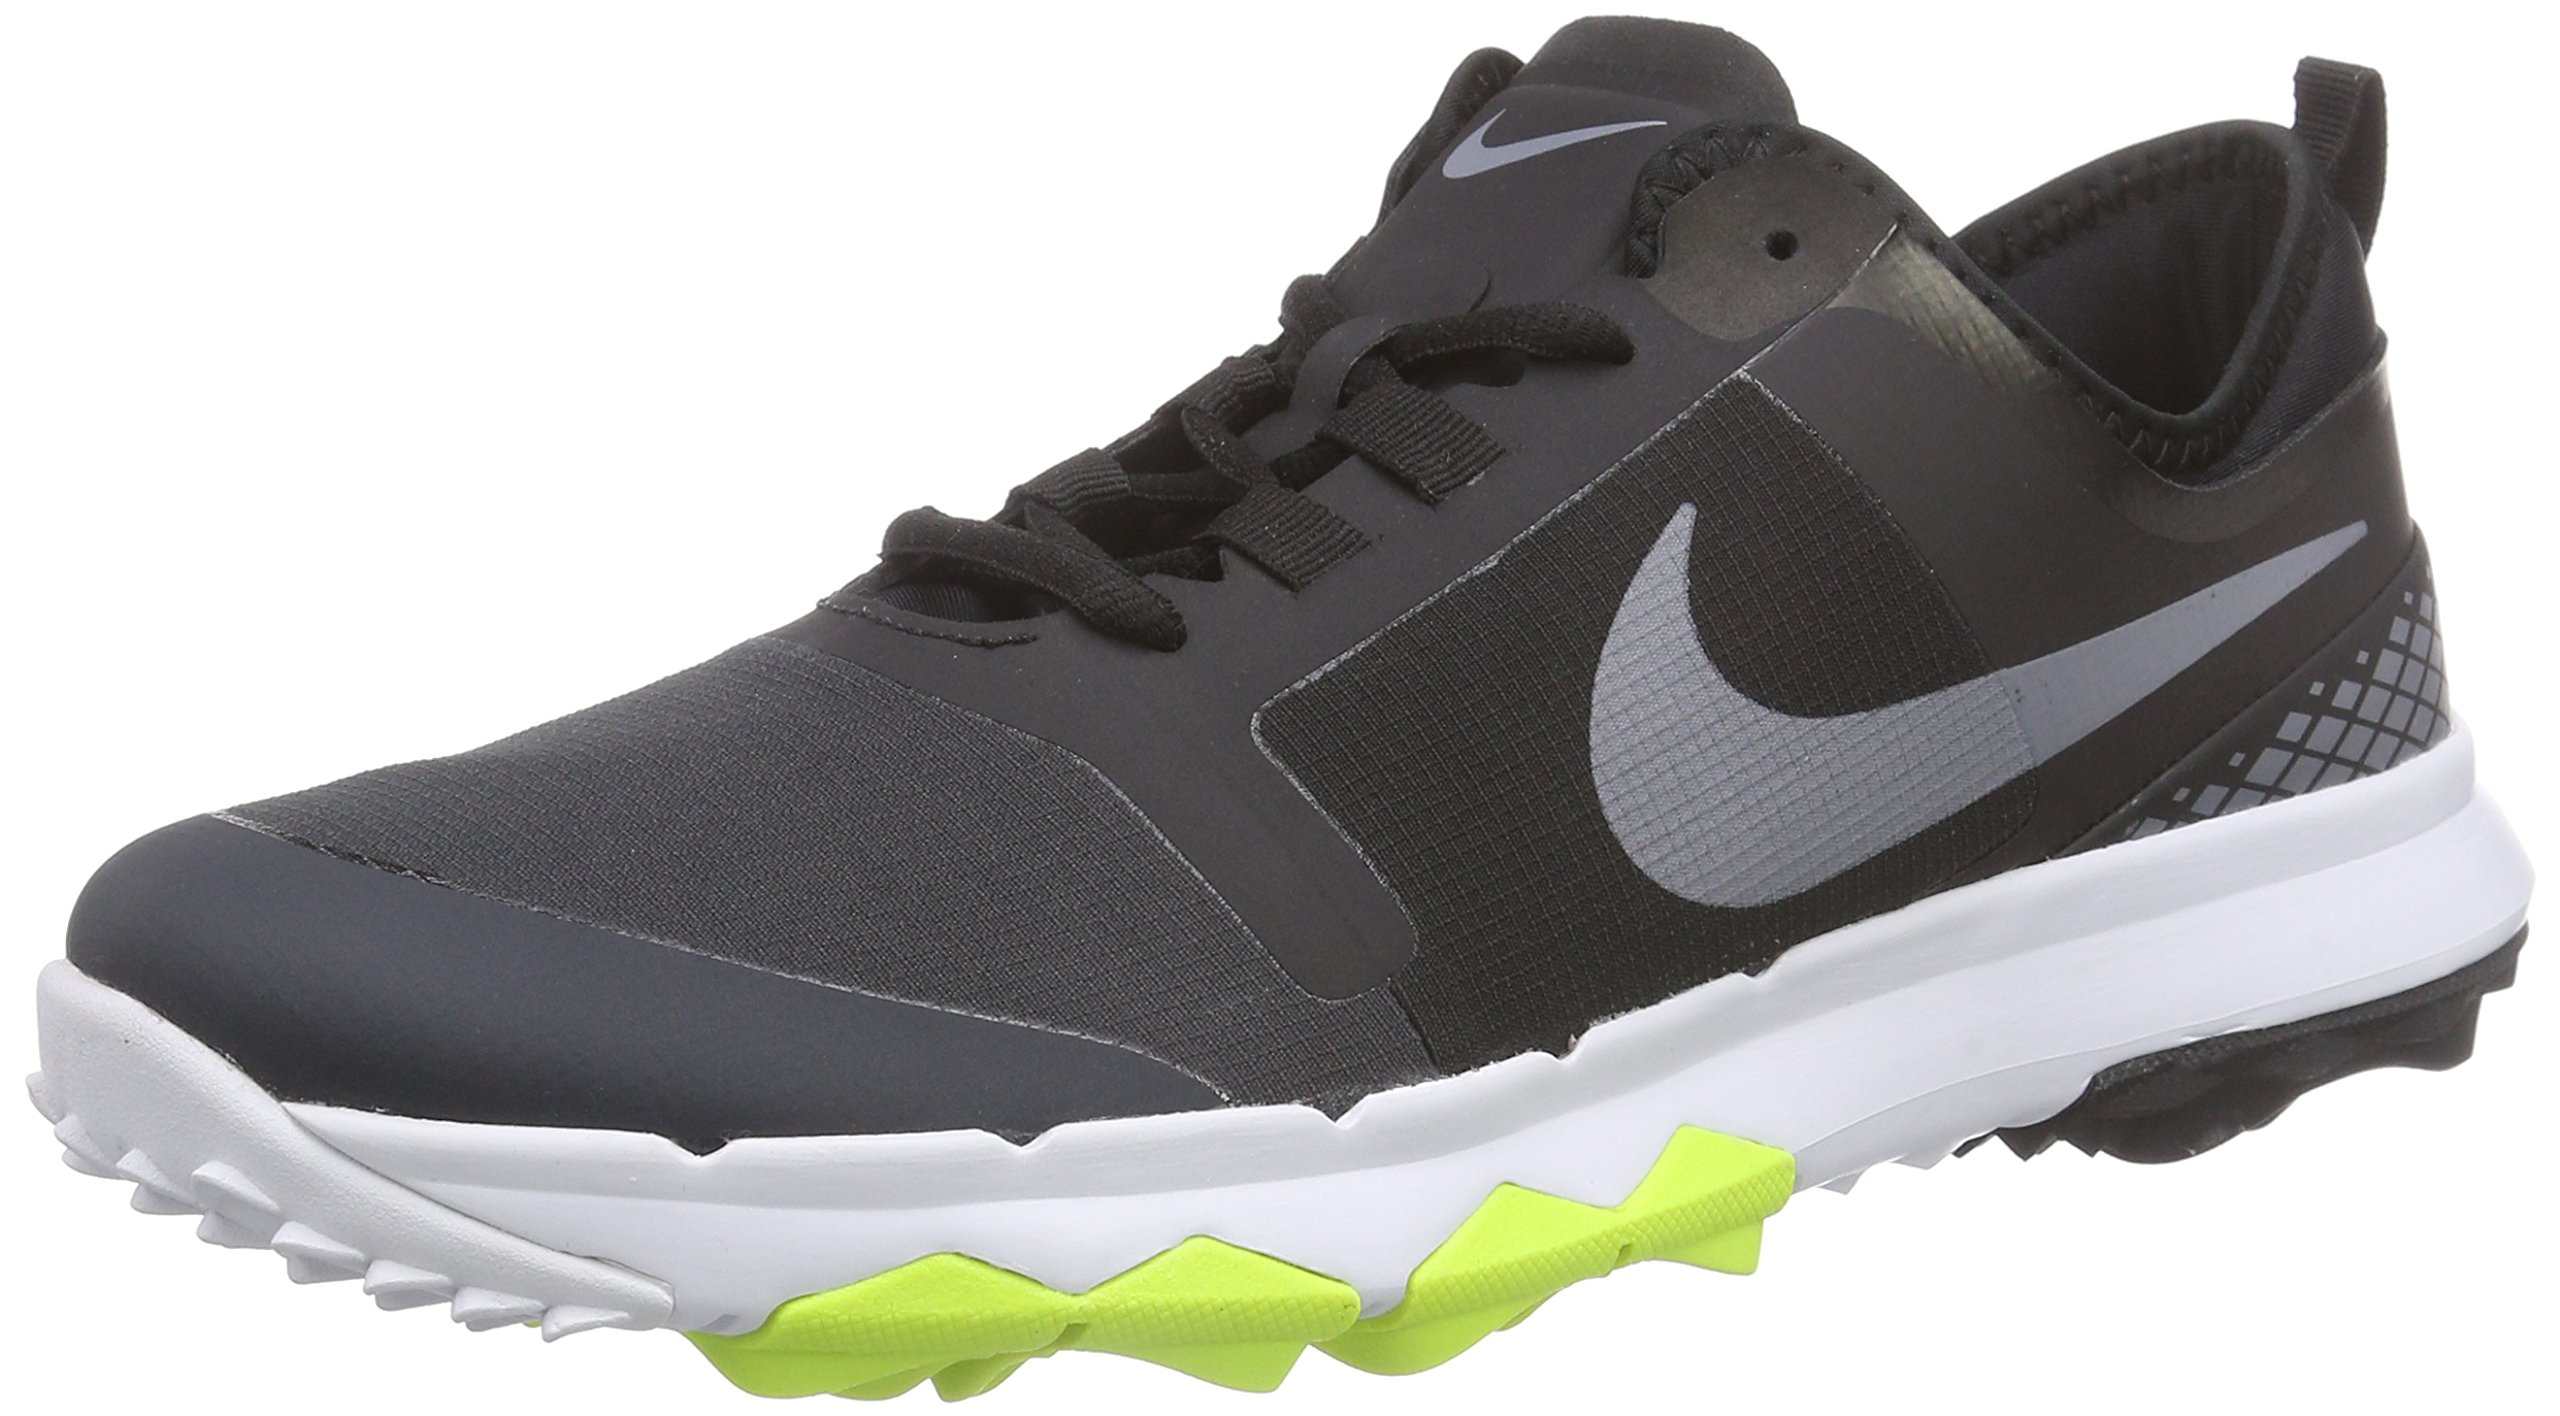 aventuras Carrera Muchos  Nike Men's Fi Impact 2 Golf Shoes- Buy Online in Mongolia at  mongolia.desertcart.com. ProductId : 82606043.